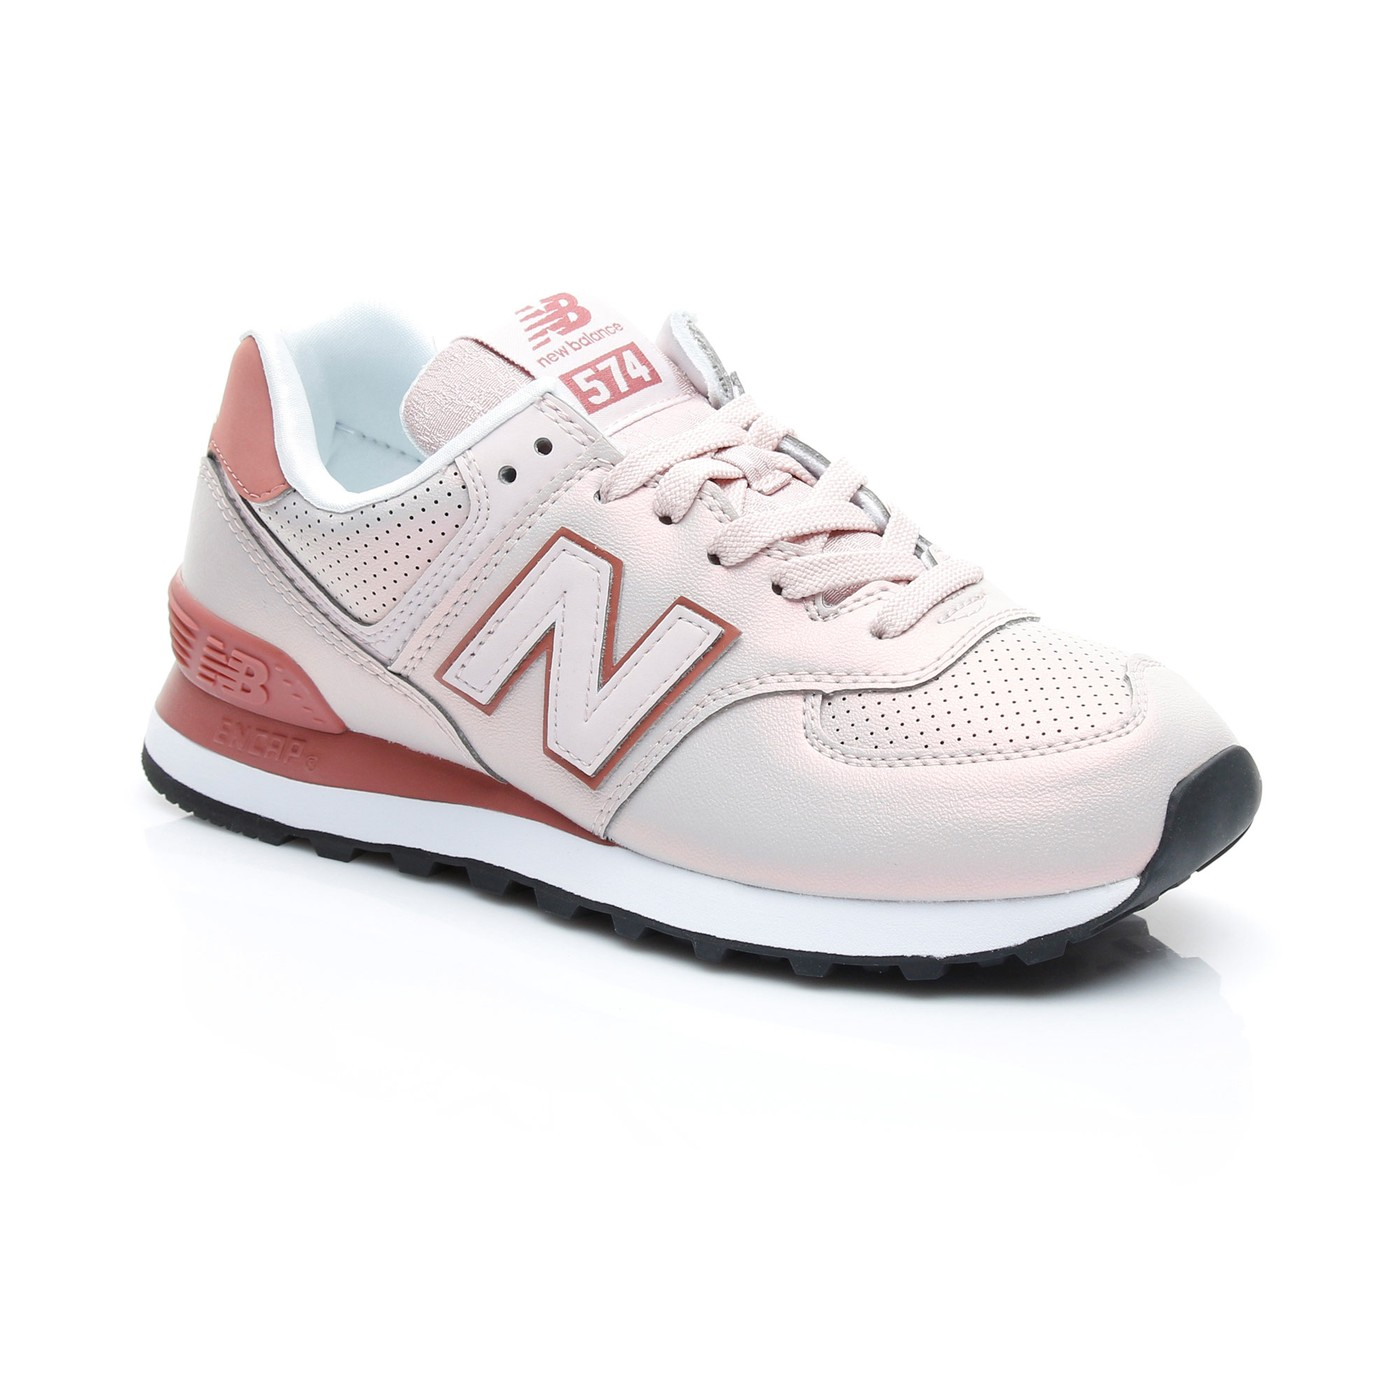 new balance 574 iridescent